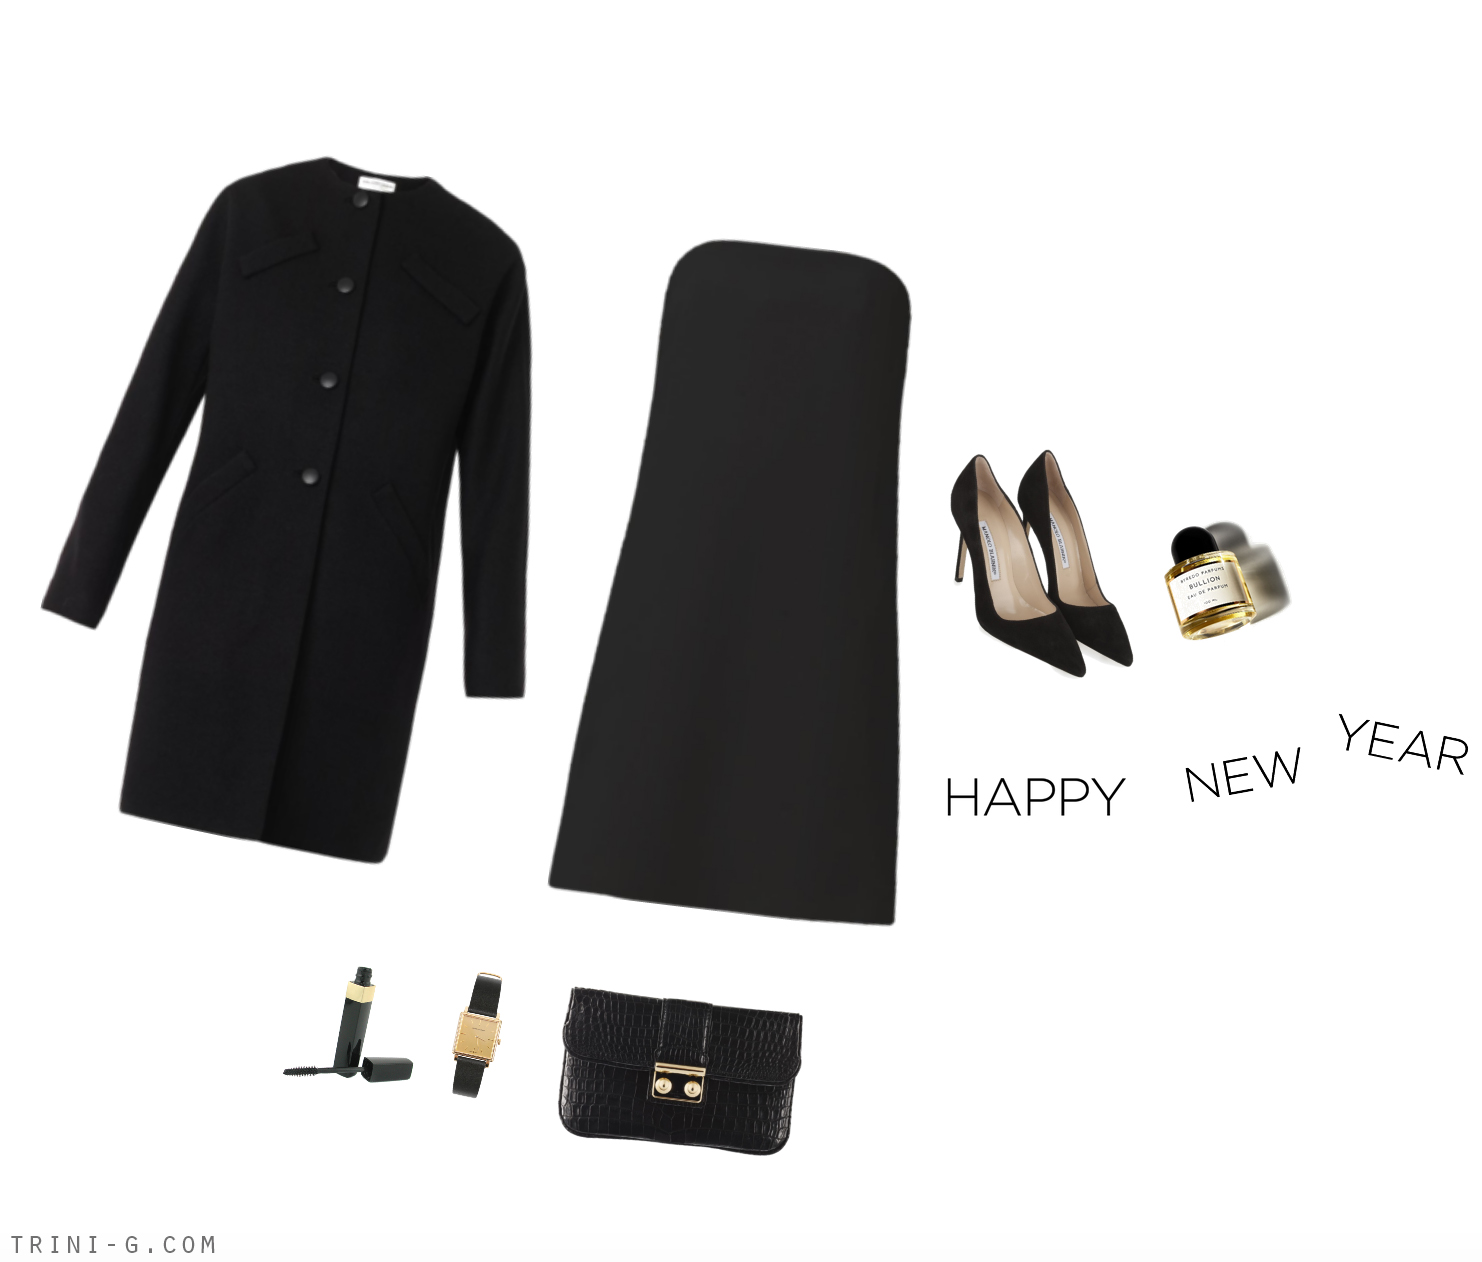 Trini blog | NYE outfit